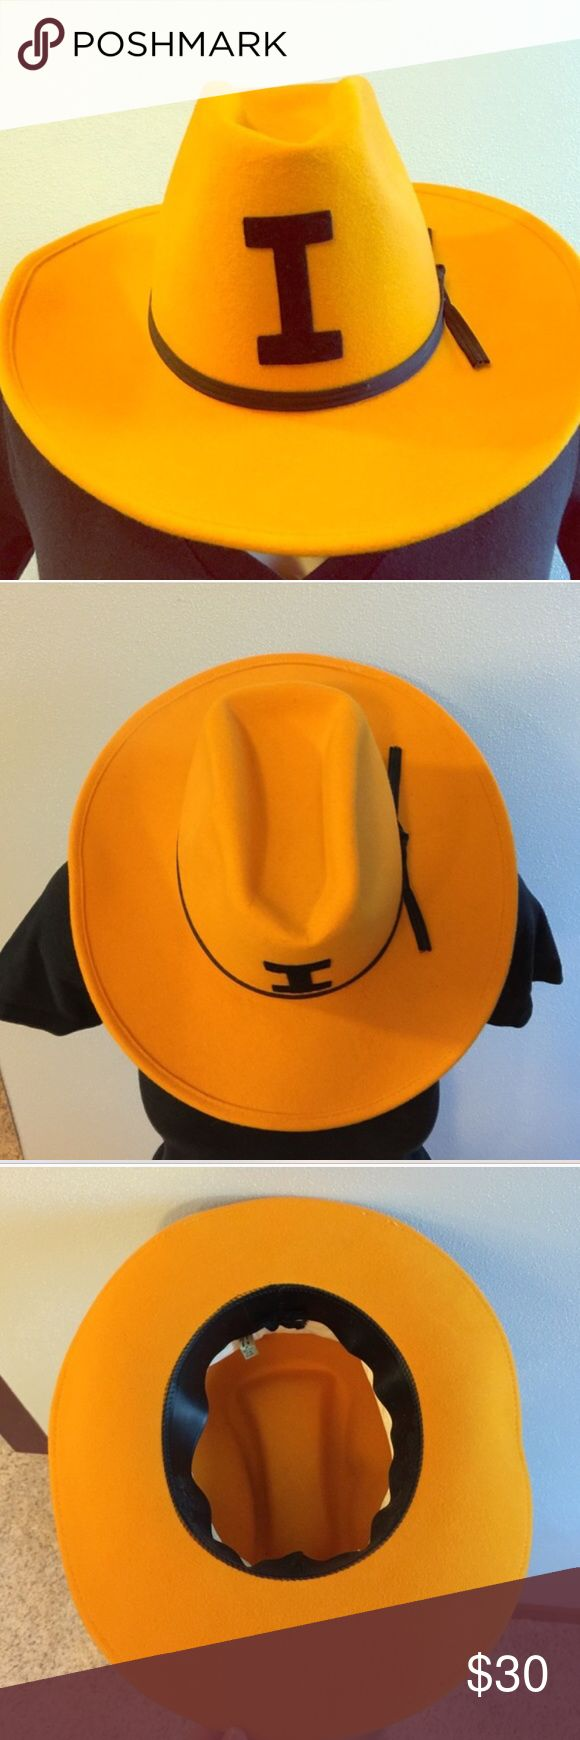 """Iowa Hawkeyes vintage cowboy hat! 💛🖤 Iowa Hawkeyes vintage cowboy hat! 💛🖤 this is a re-posh, my ex went to Iowa and we were going to a game but I didn't end up wearing it. Now I have no need for it lol 🙈 great condition and perfect for tailgating! Inside measurements are 6 3/4"""" x 8"""". Made of 100% wool! Iowa Hawkeyes Accessories Hats"""